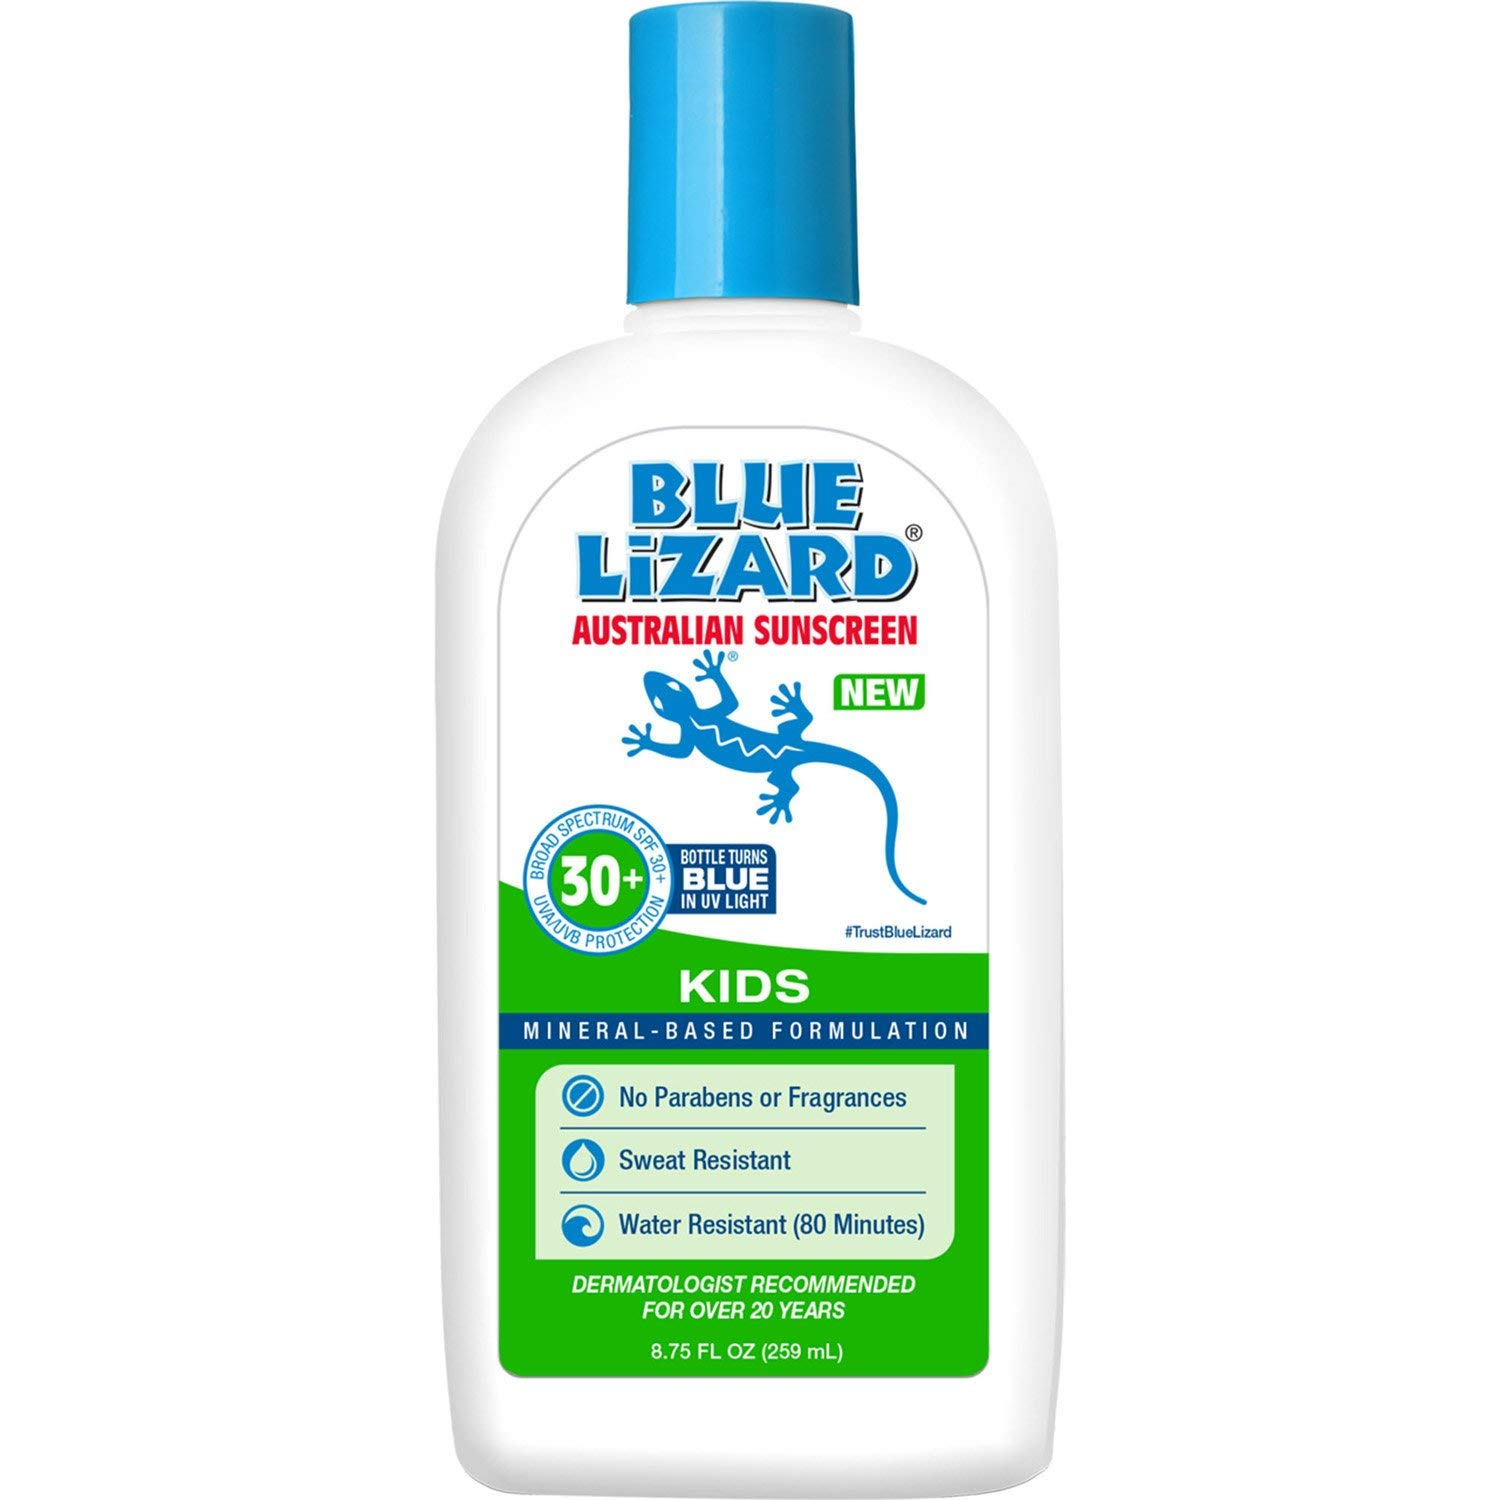 Blue Lizard Australian Sunscreen - Kids Sunscreen, SPF 30+ Broad Spectrum UVA/UVB Protection - 8.75 oz. Bottle